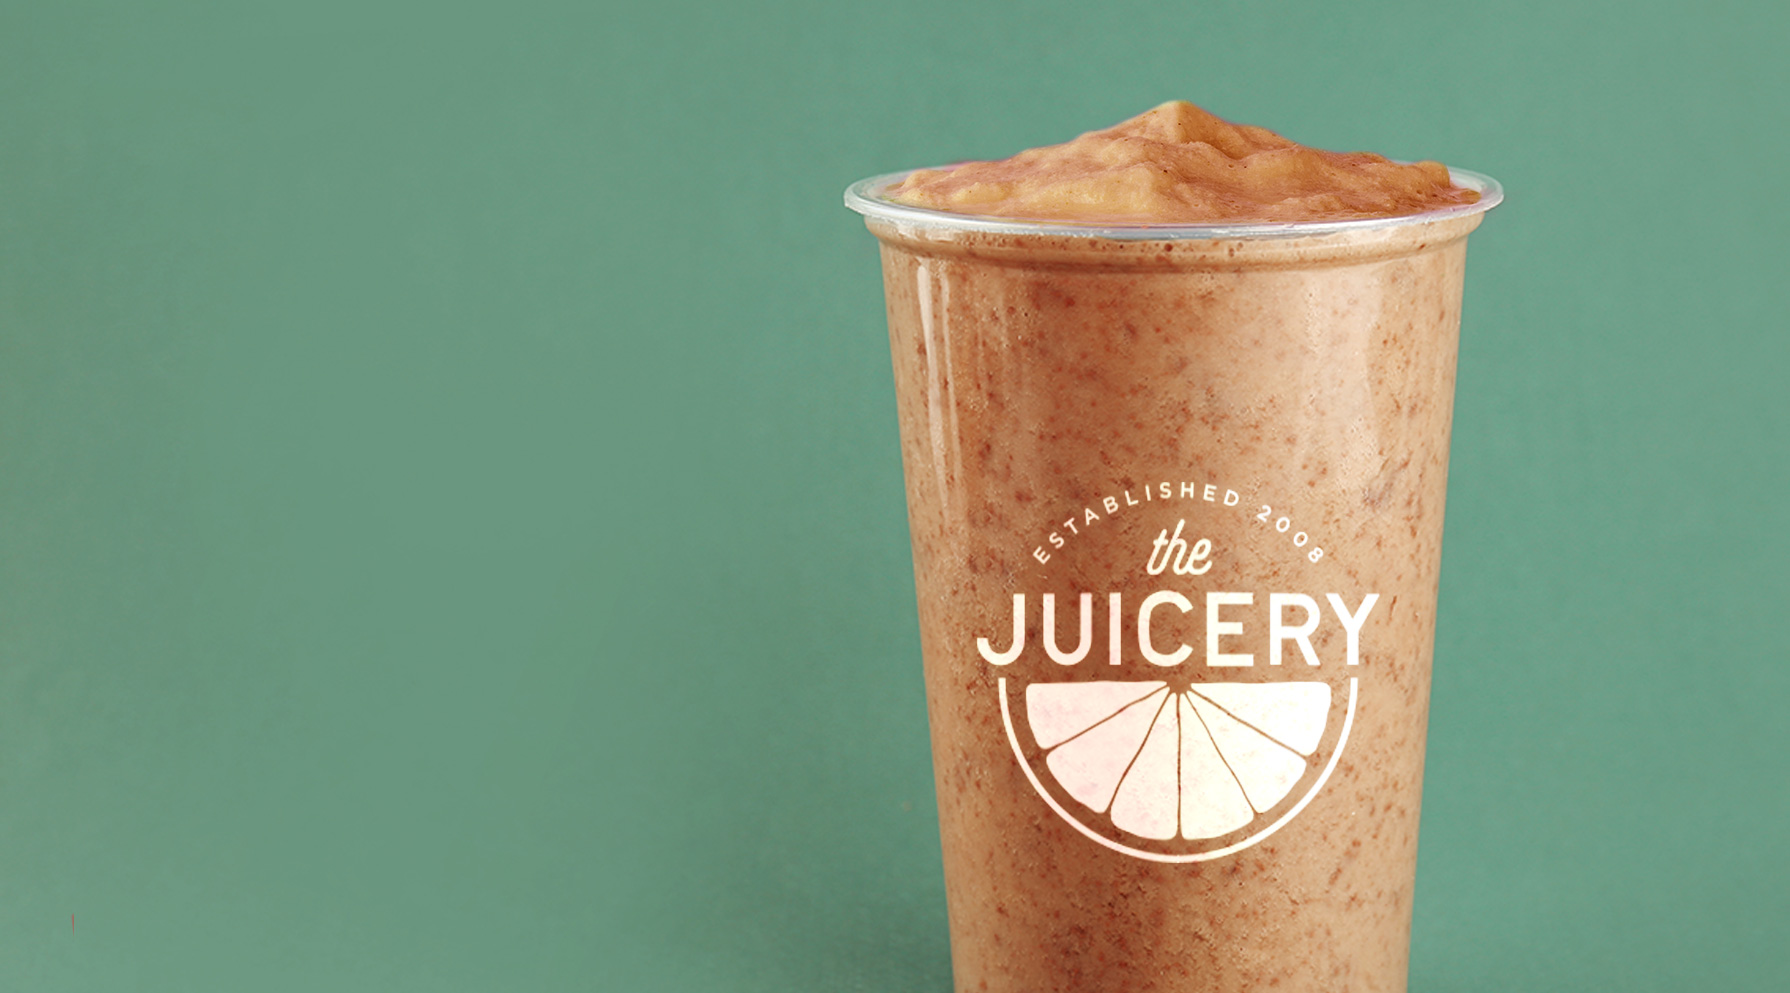 The Juicery Logo on Smoothie